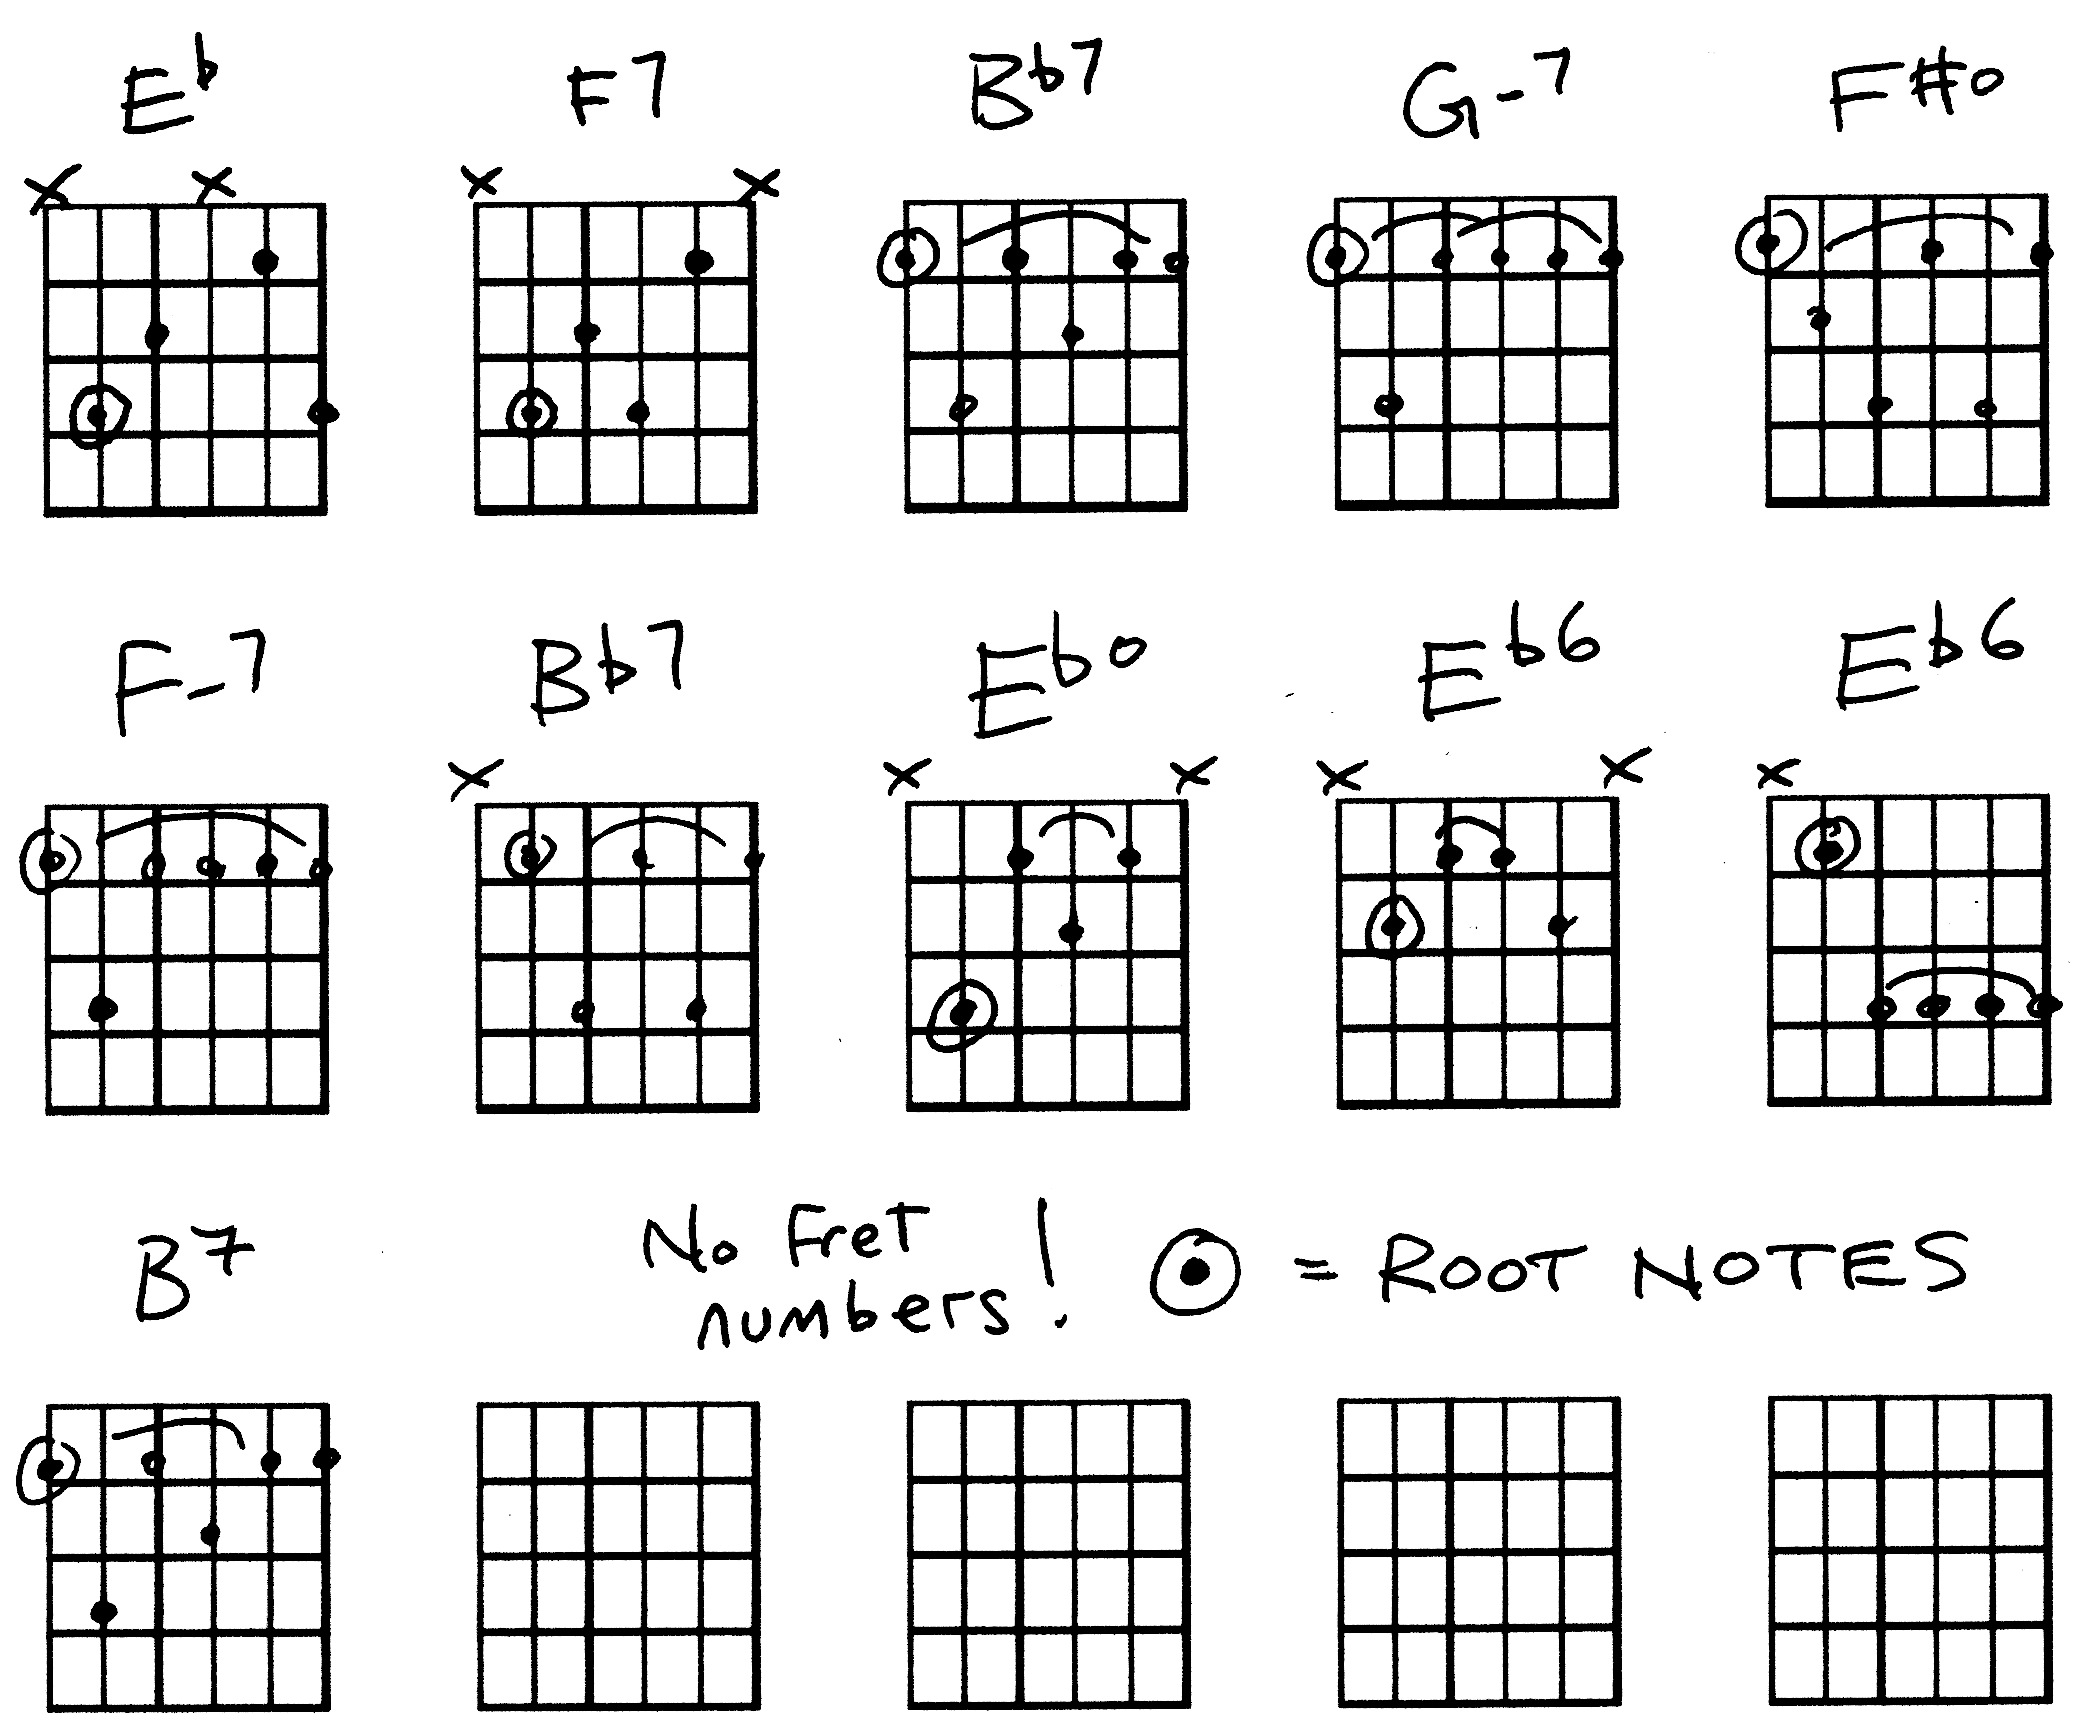 Some Jazzy Chords To The Tune Of Dads Army Brian Acton